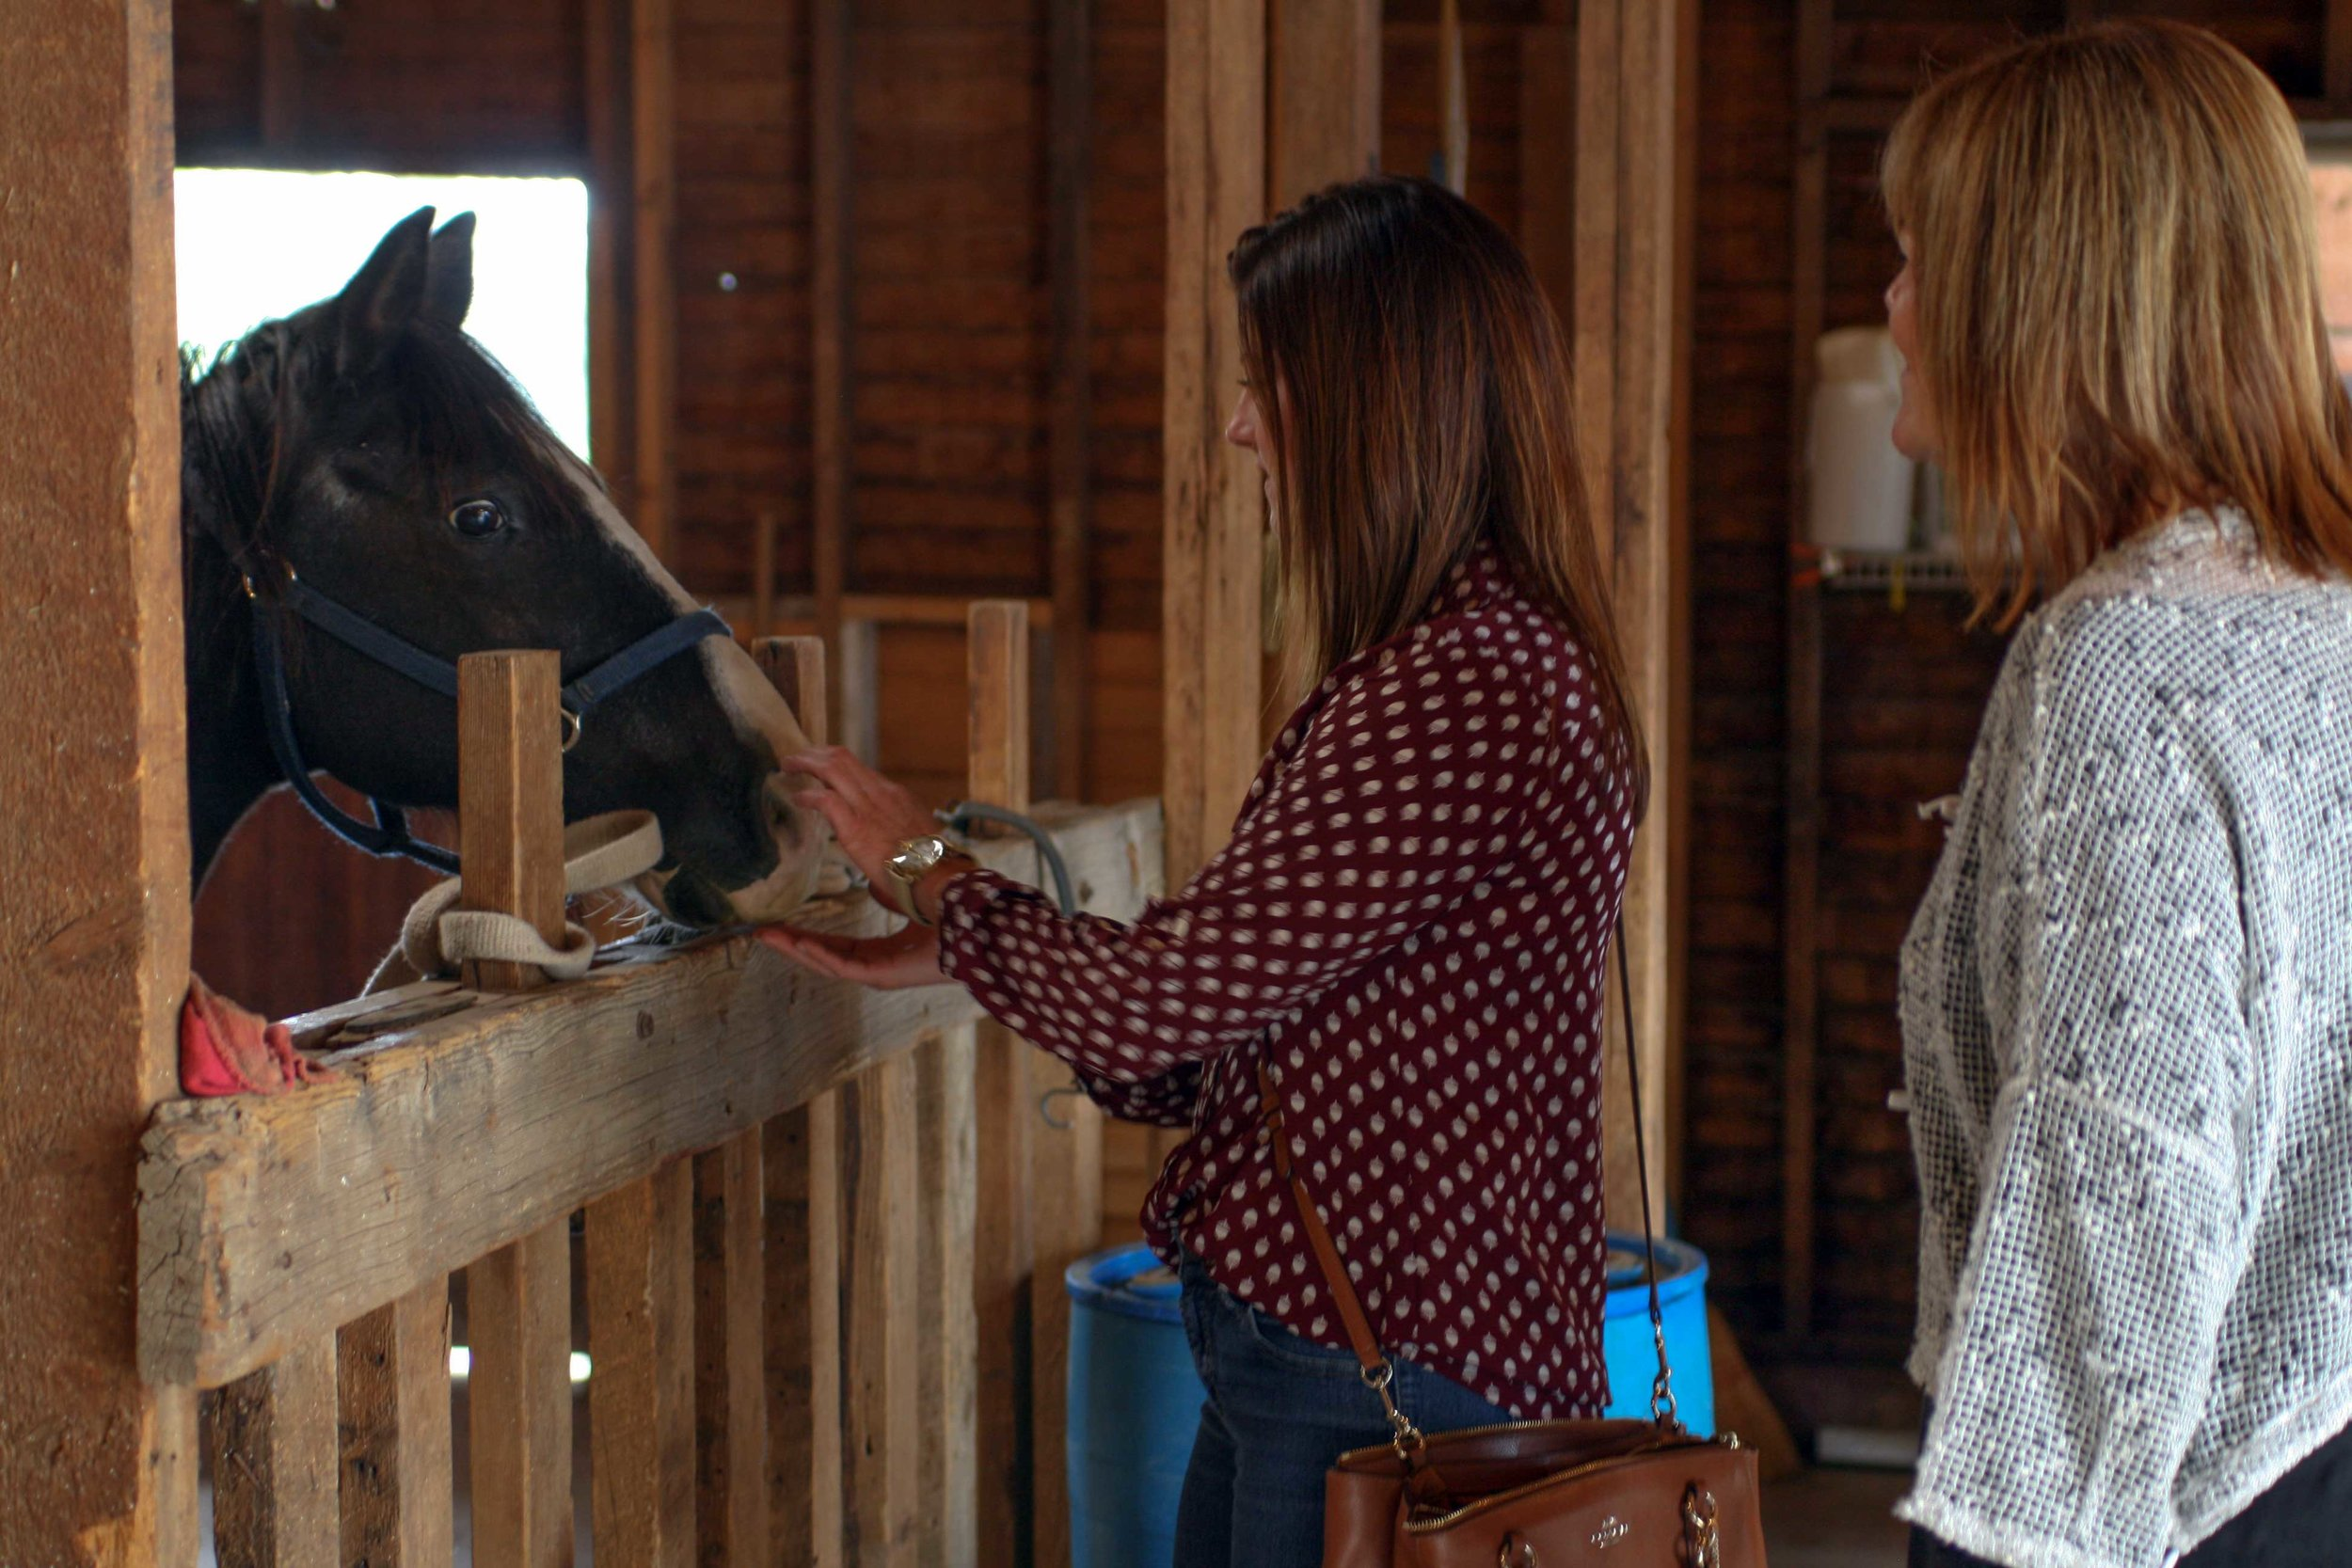 Tour attendees walked through the barn at the farm property on Overland Trail